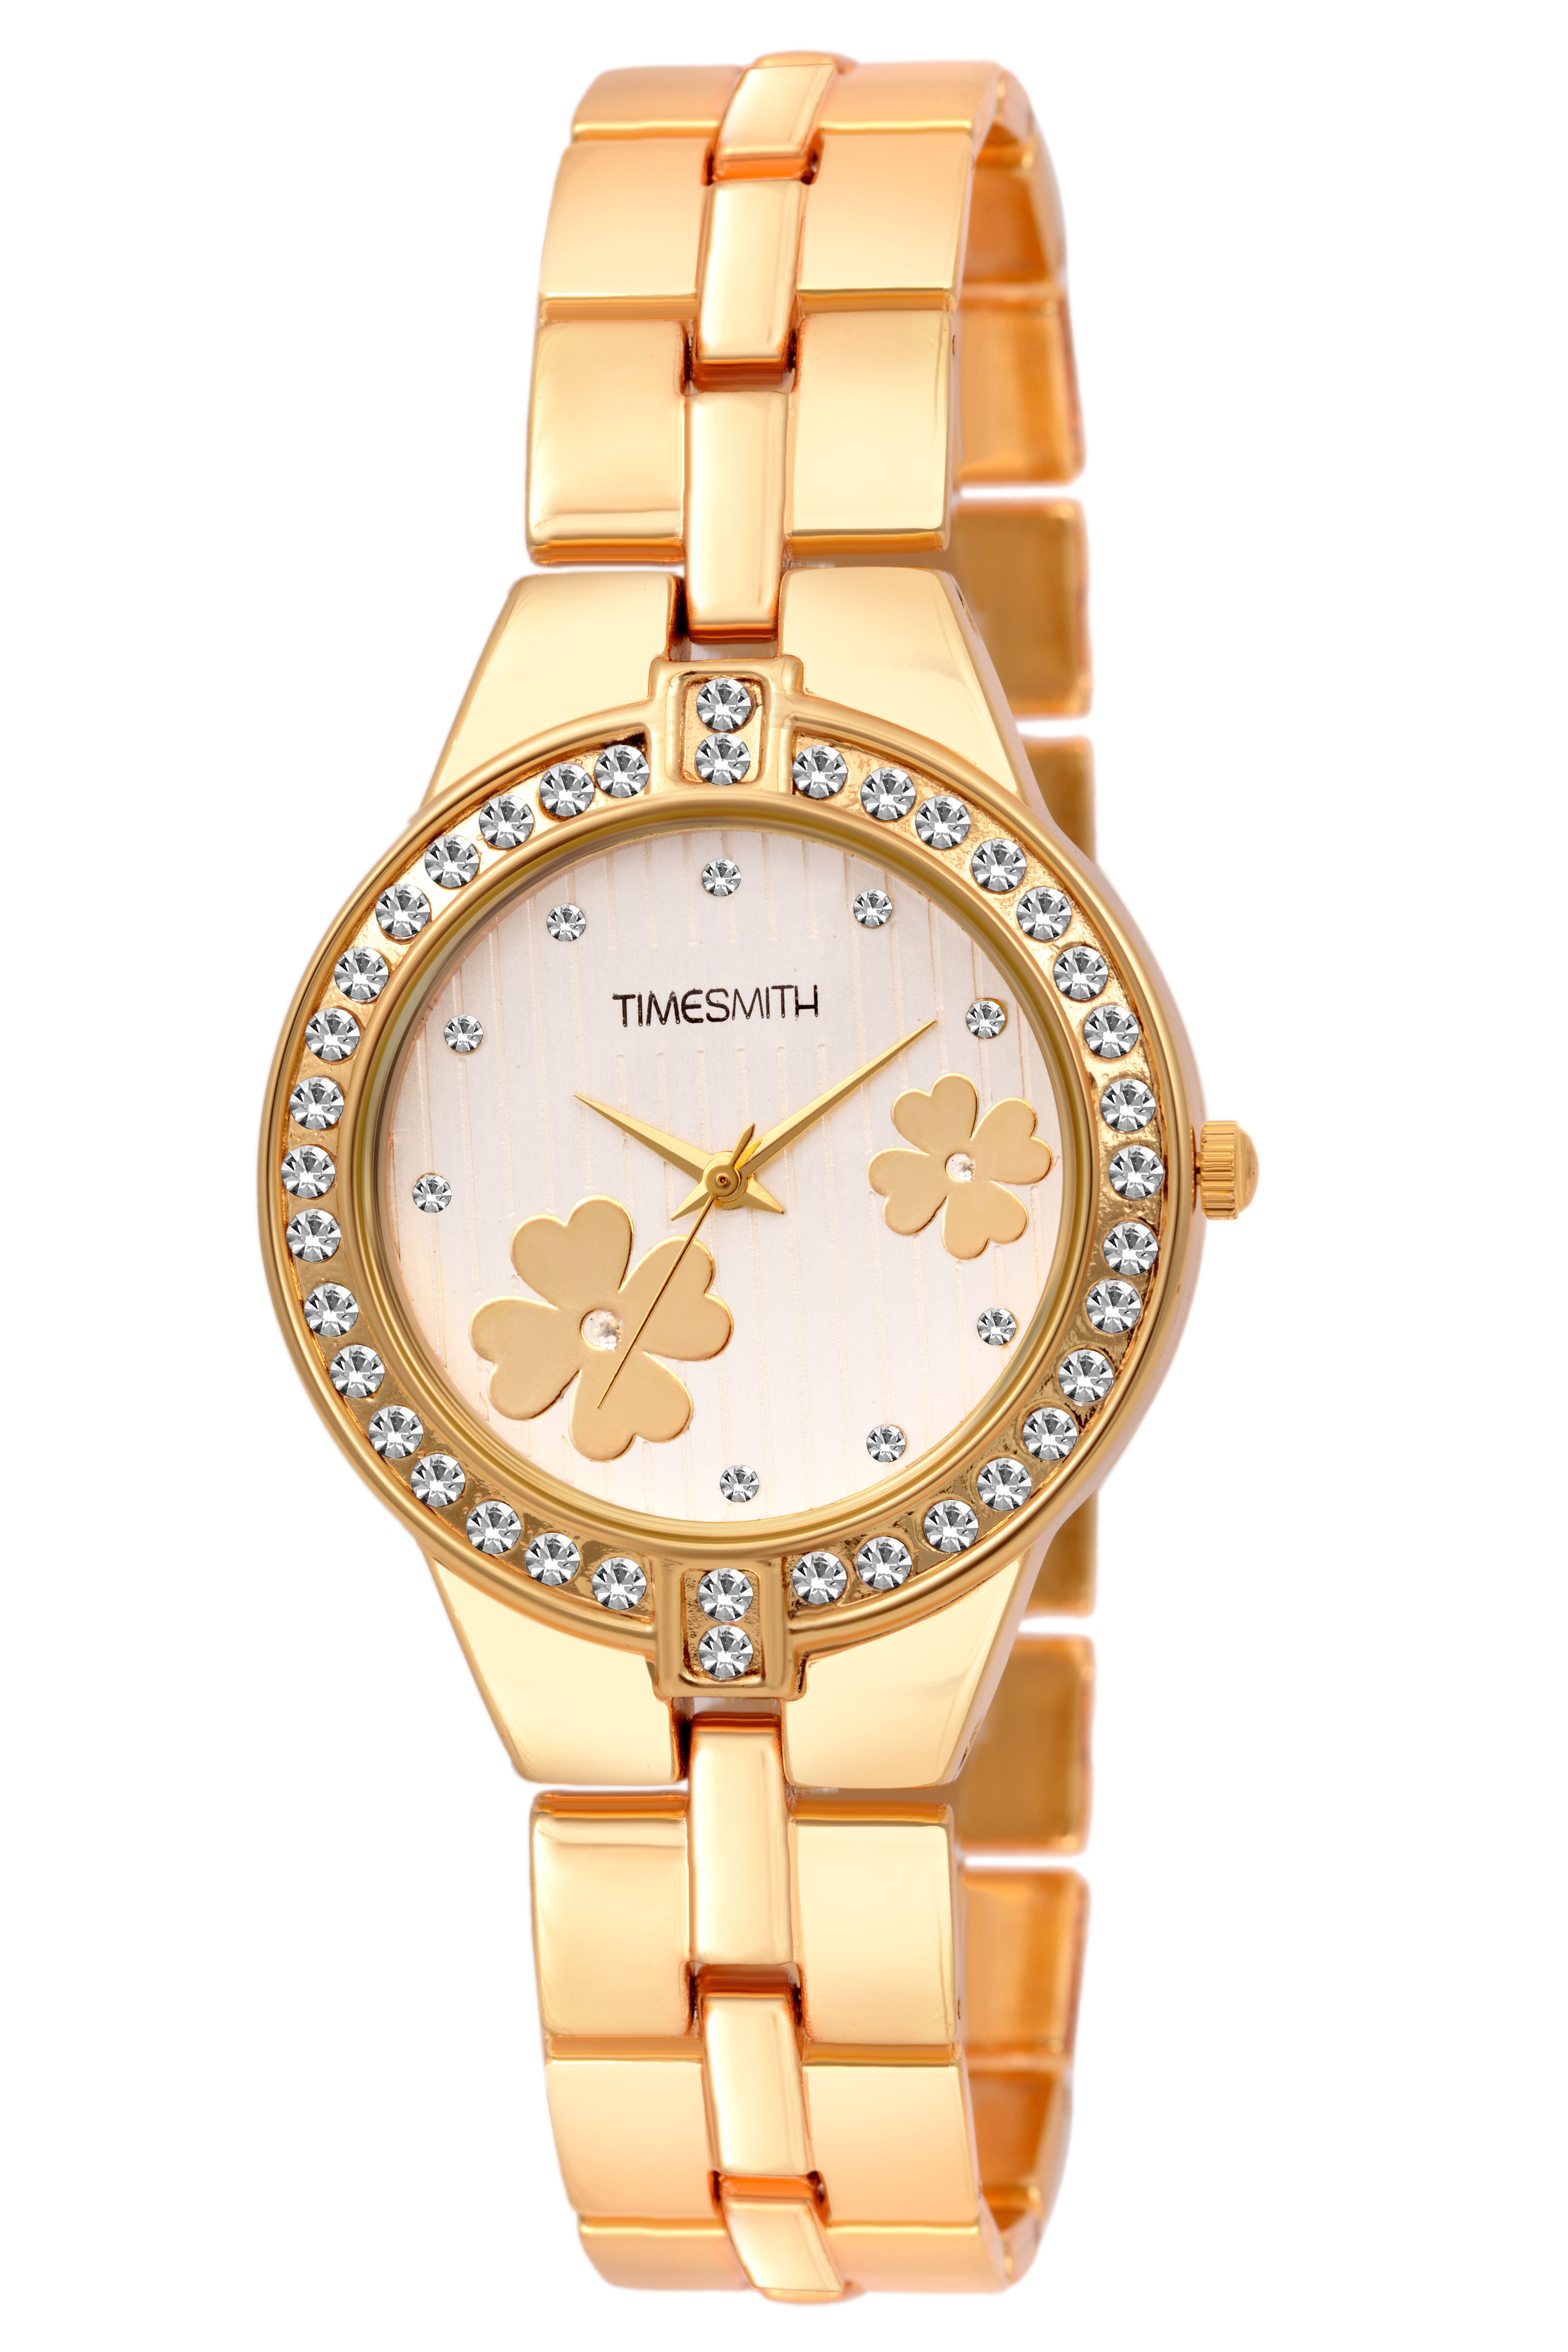 Timesmith   Timesmith White Dial Gold Stainless Steel Strap Branded Analog Watch for Women TSC-054